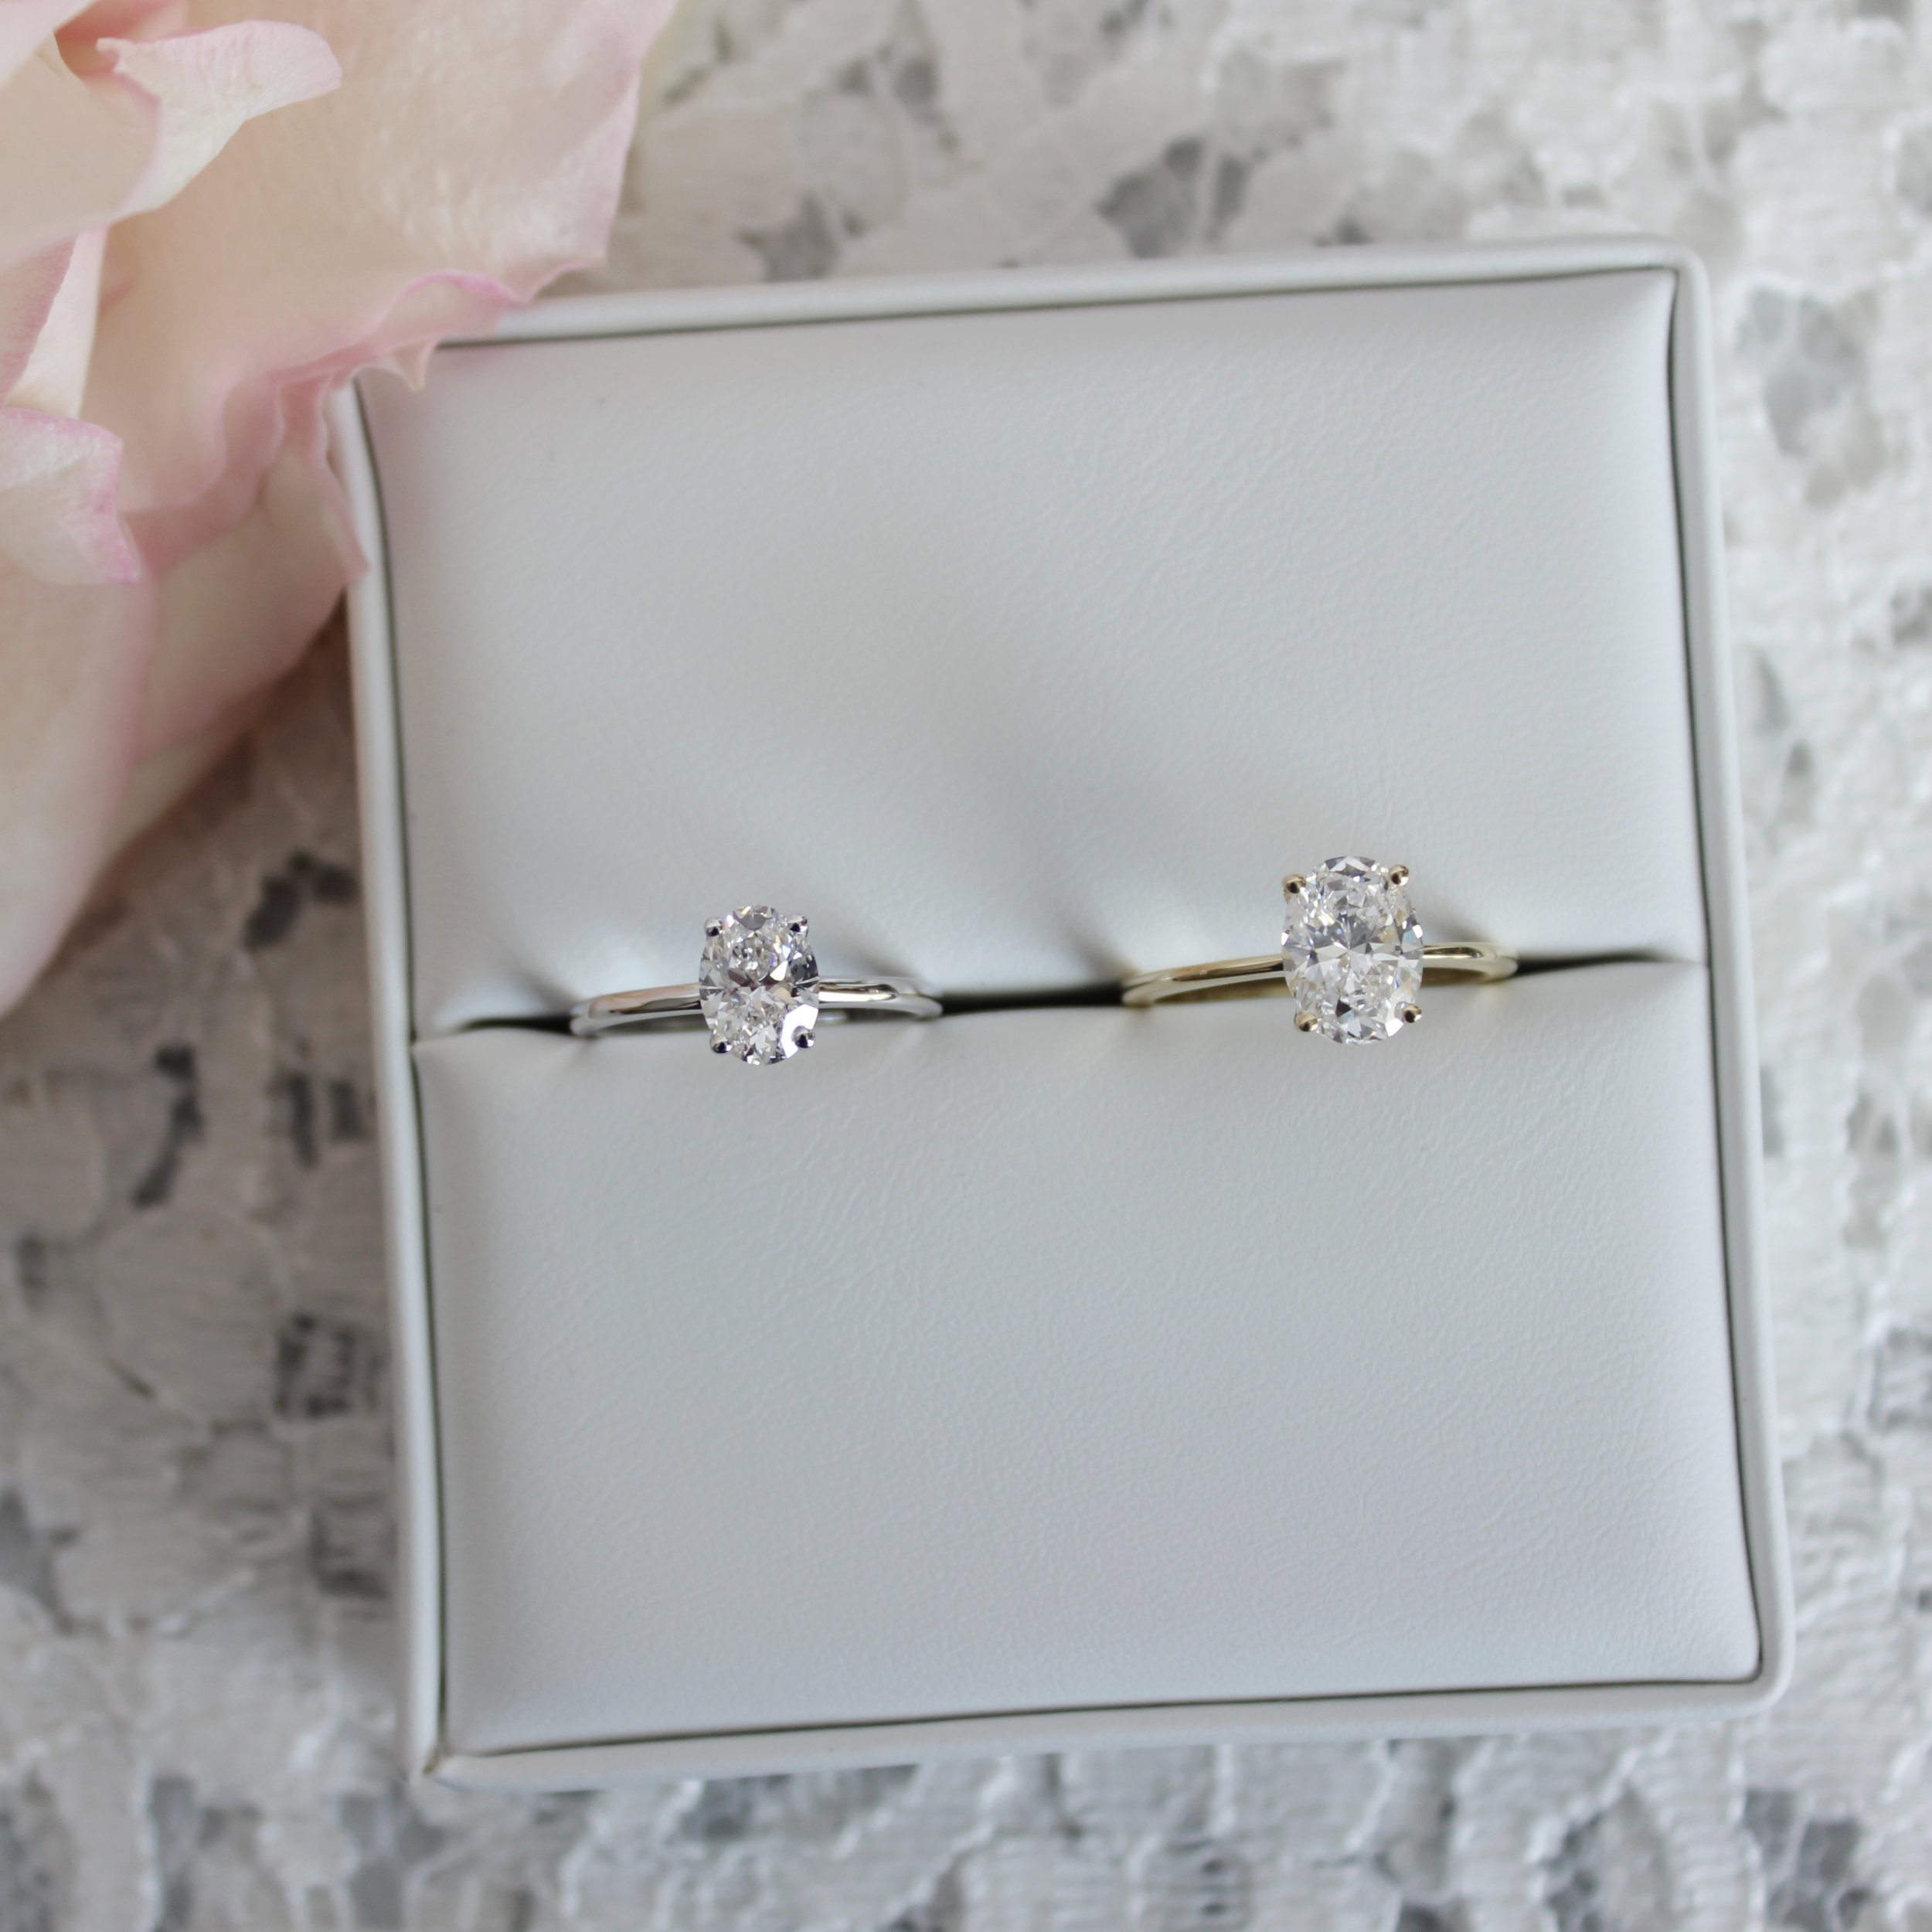 Four Prong Oval Solitaires